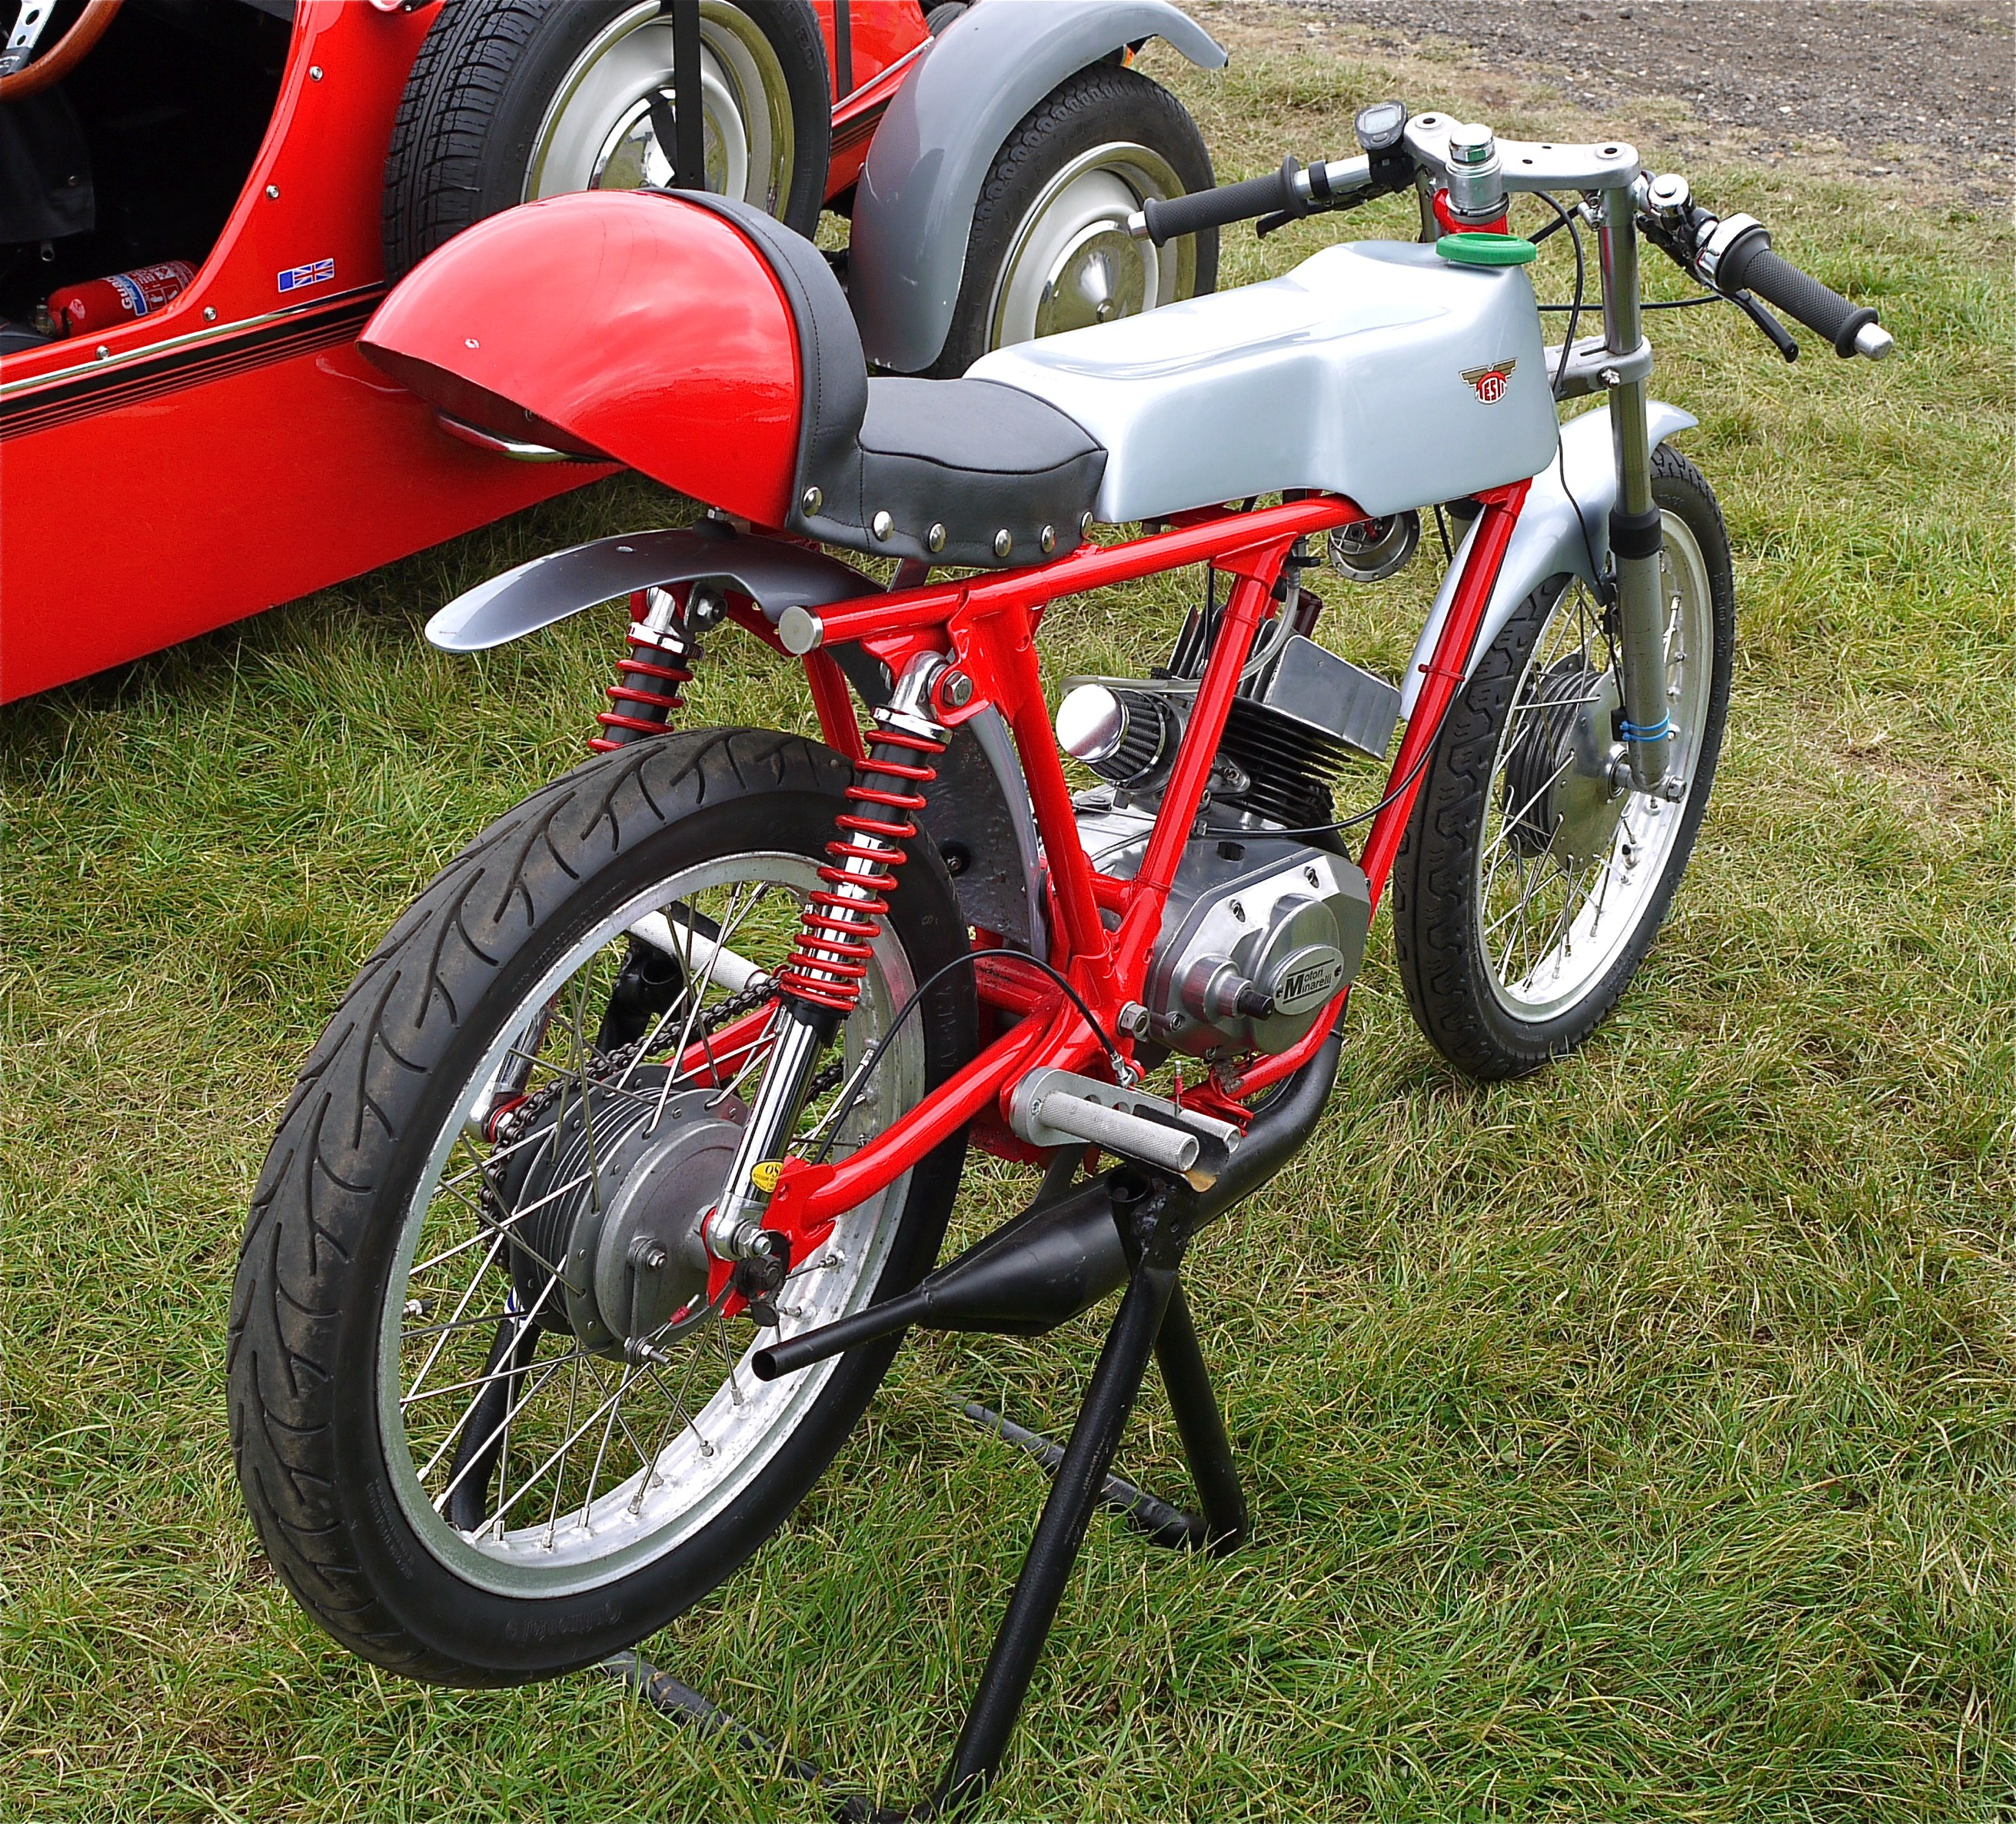 File:Testi 50cc Racing Motorcycle - Flickr - mick - Lumix.jpg - Wikimedia Commons